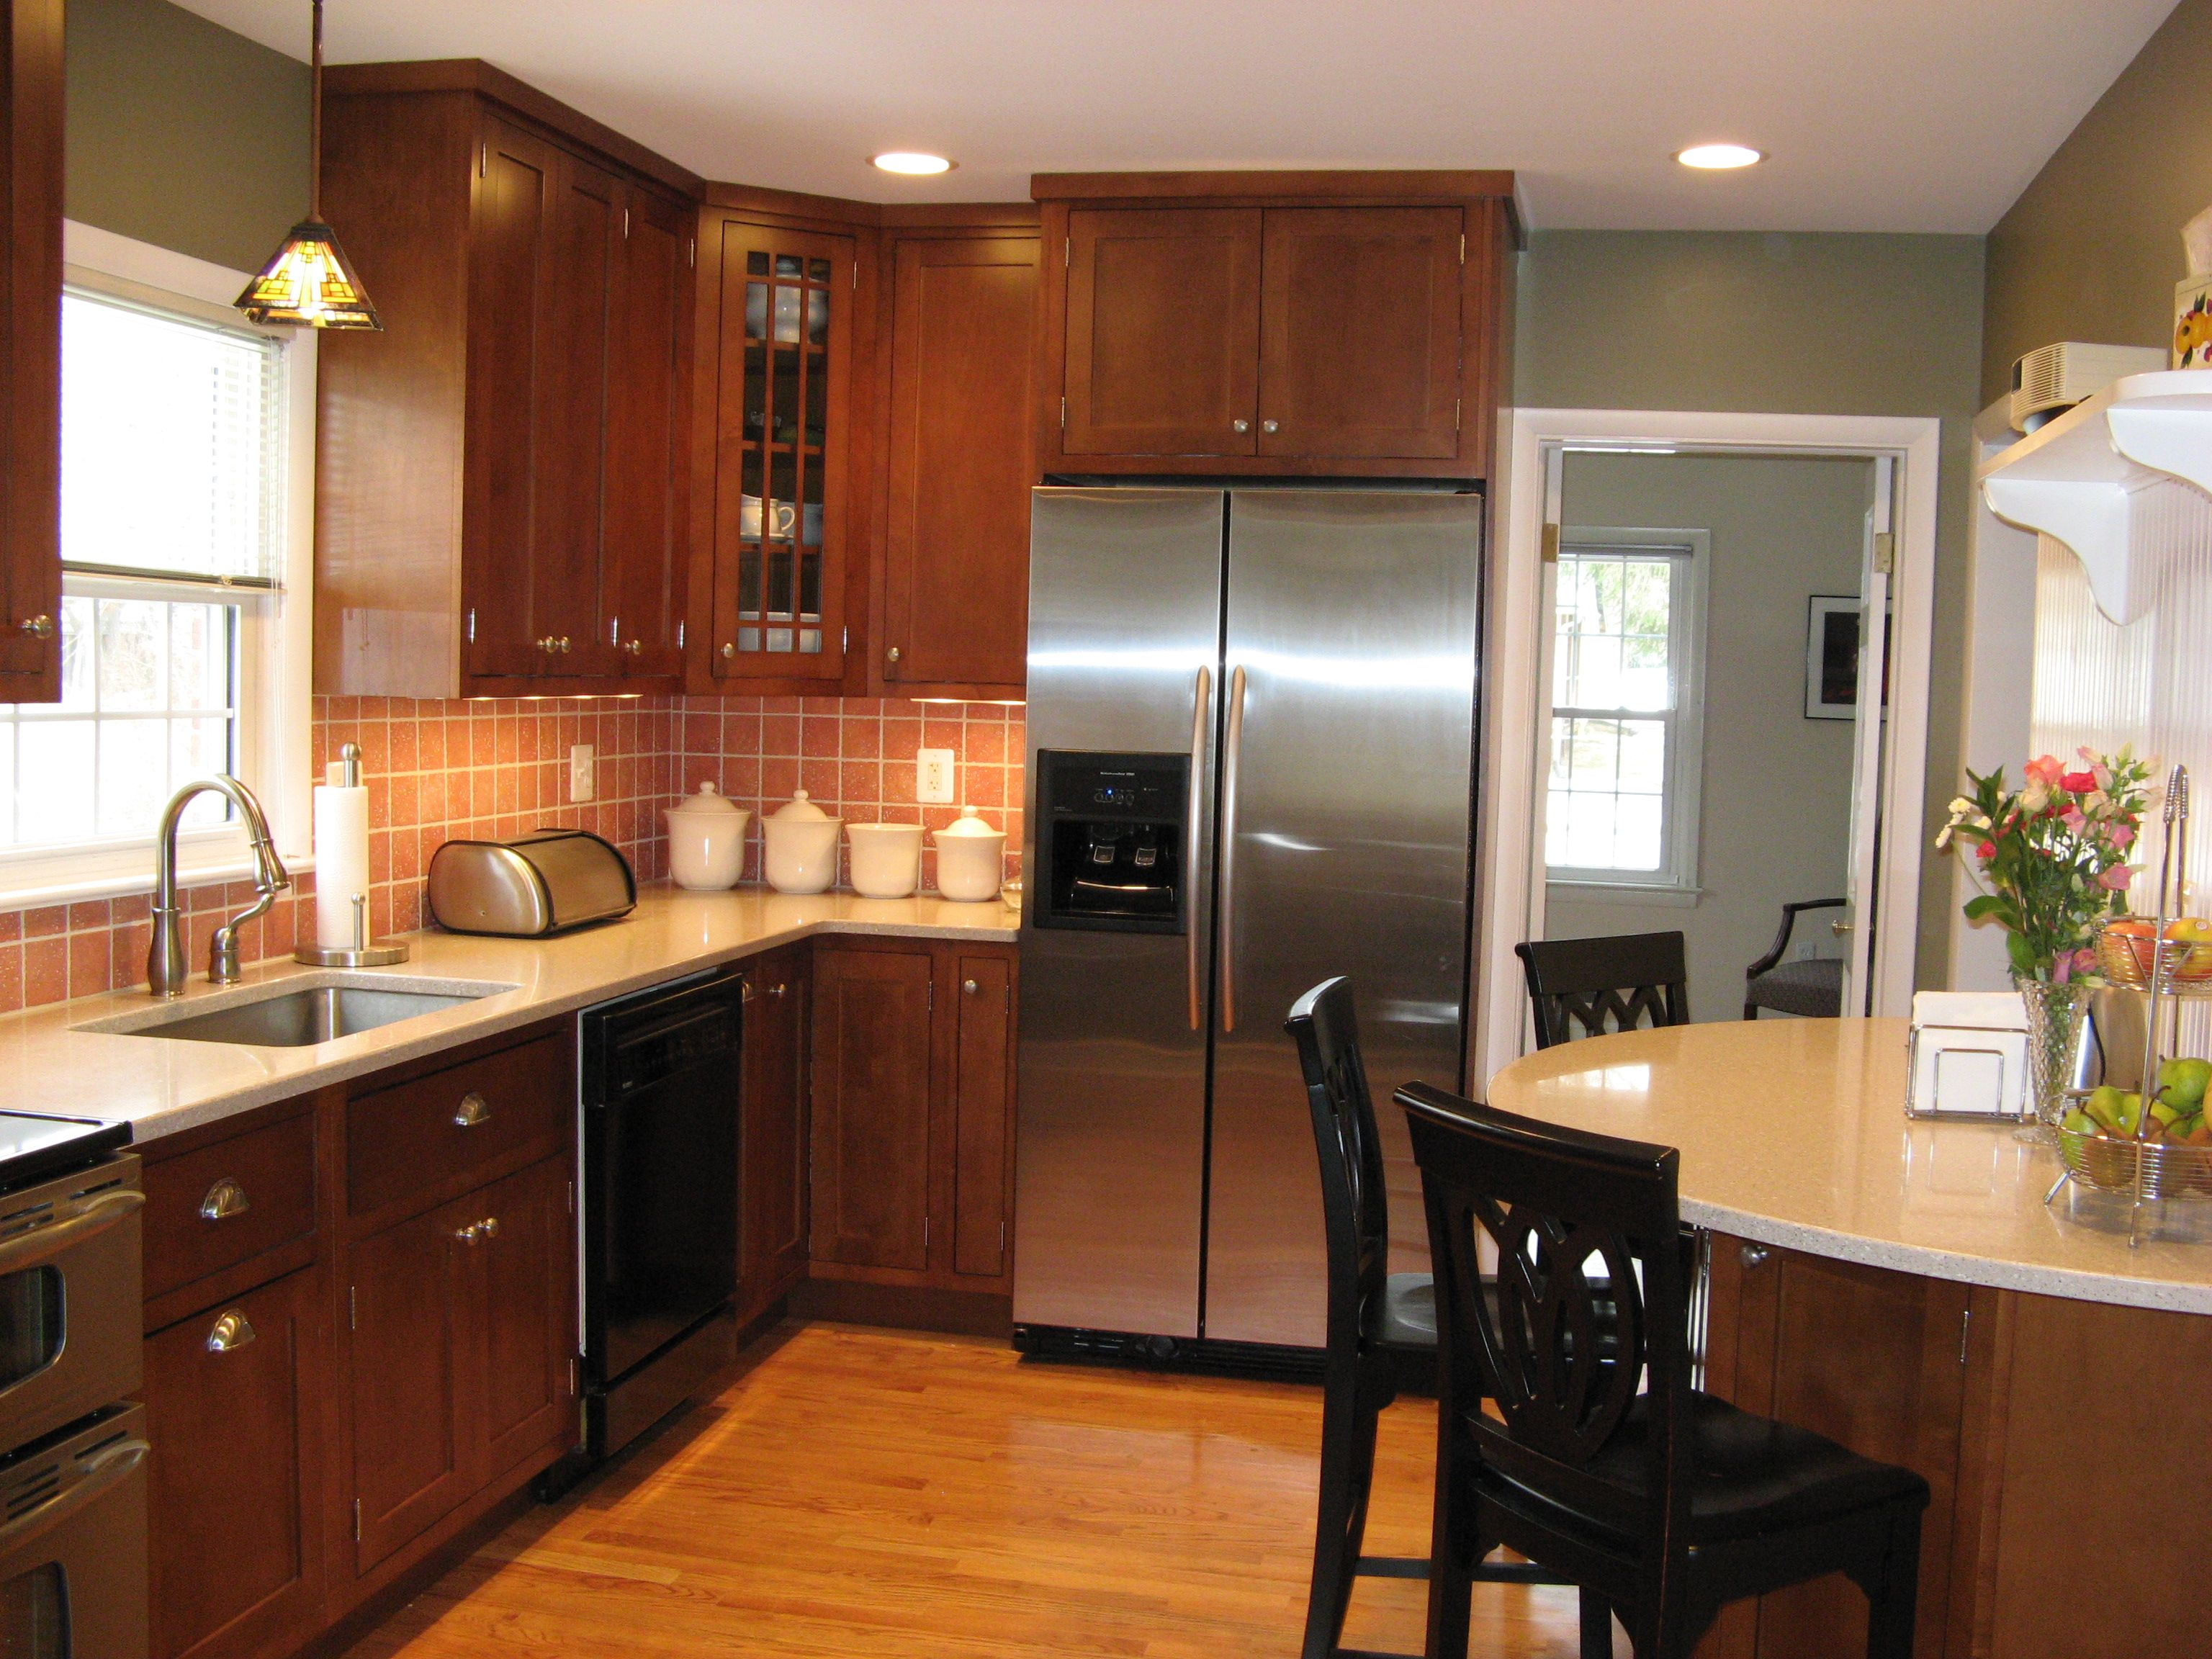 Washington Grove Md Kitchen Renovation Including 42 Shaker Style Cherry Cabinets Quartz Counter